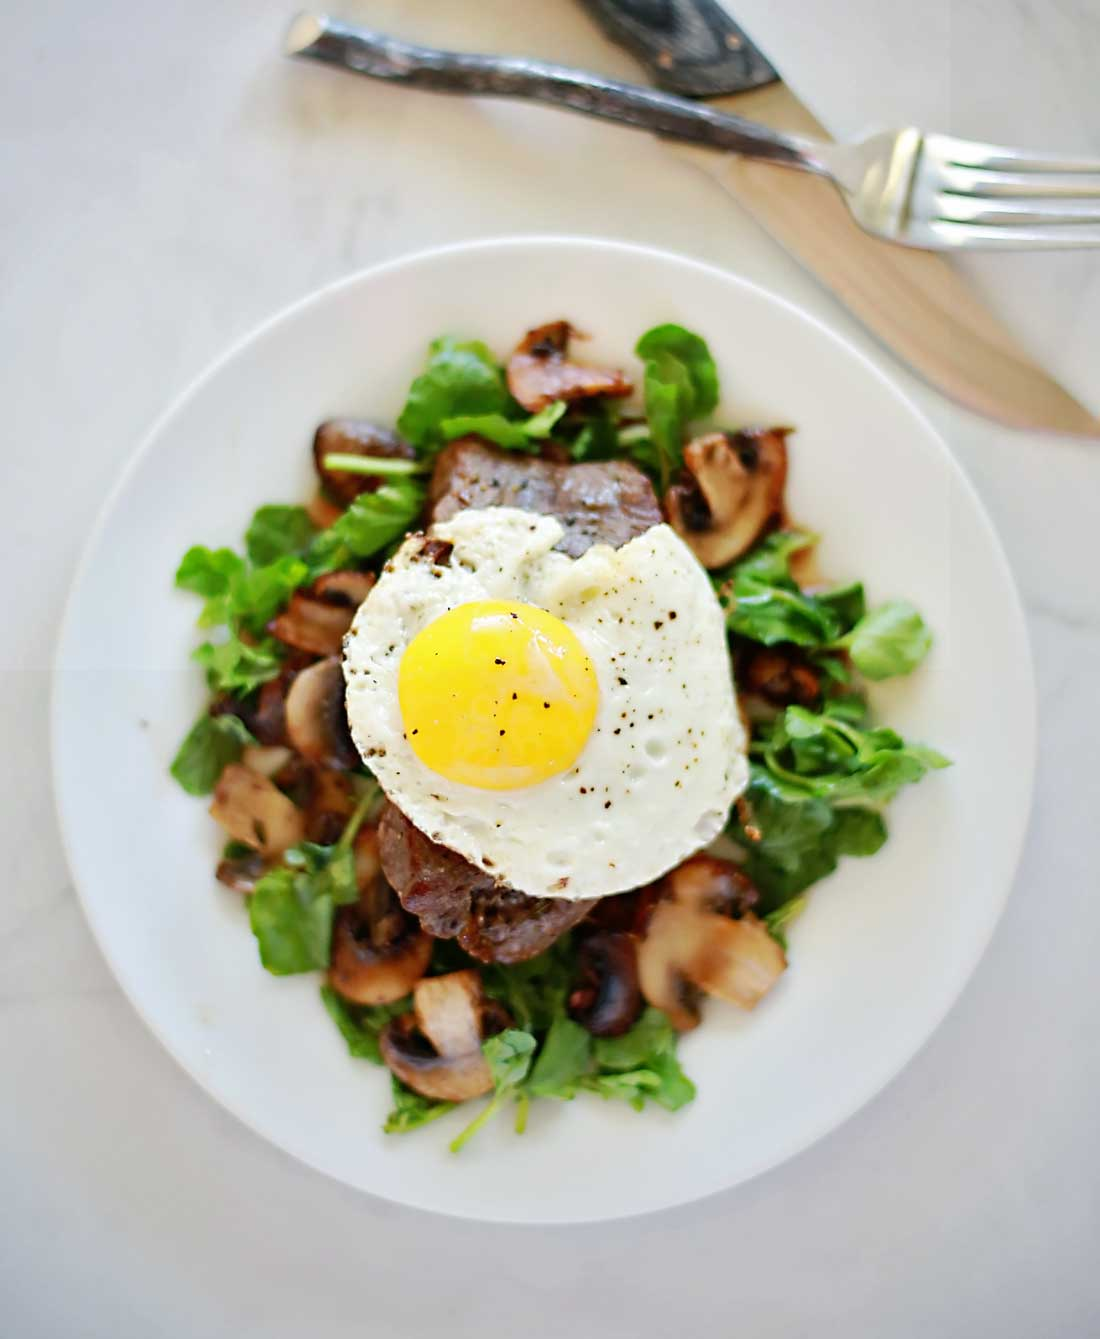 Steak and Eggs on a mushroom watercress salad!